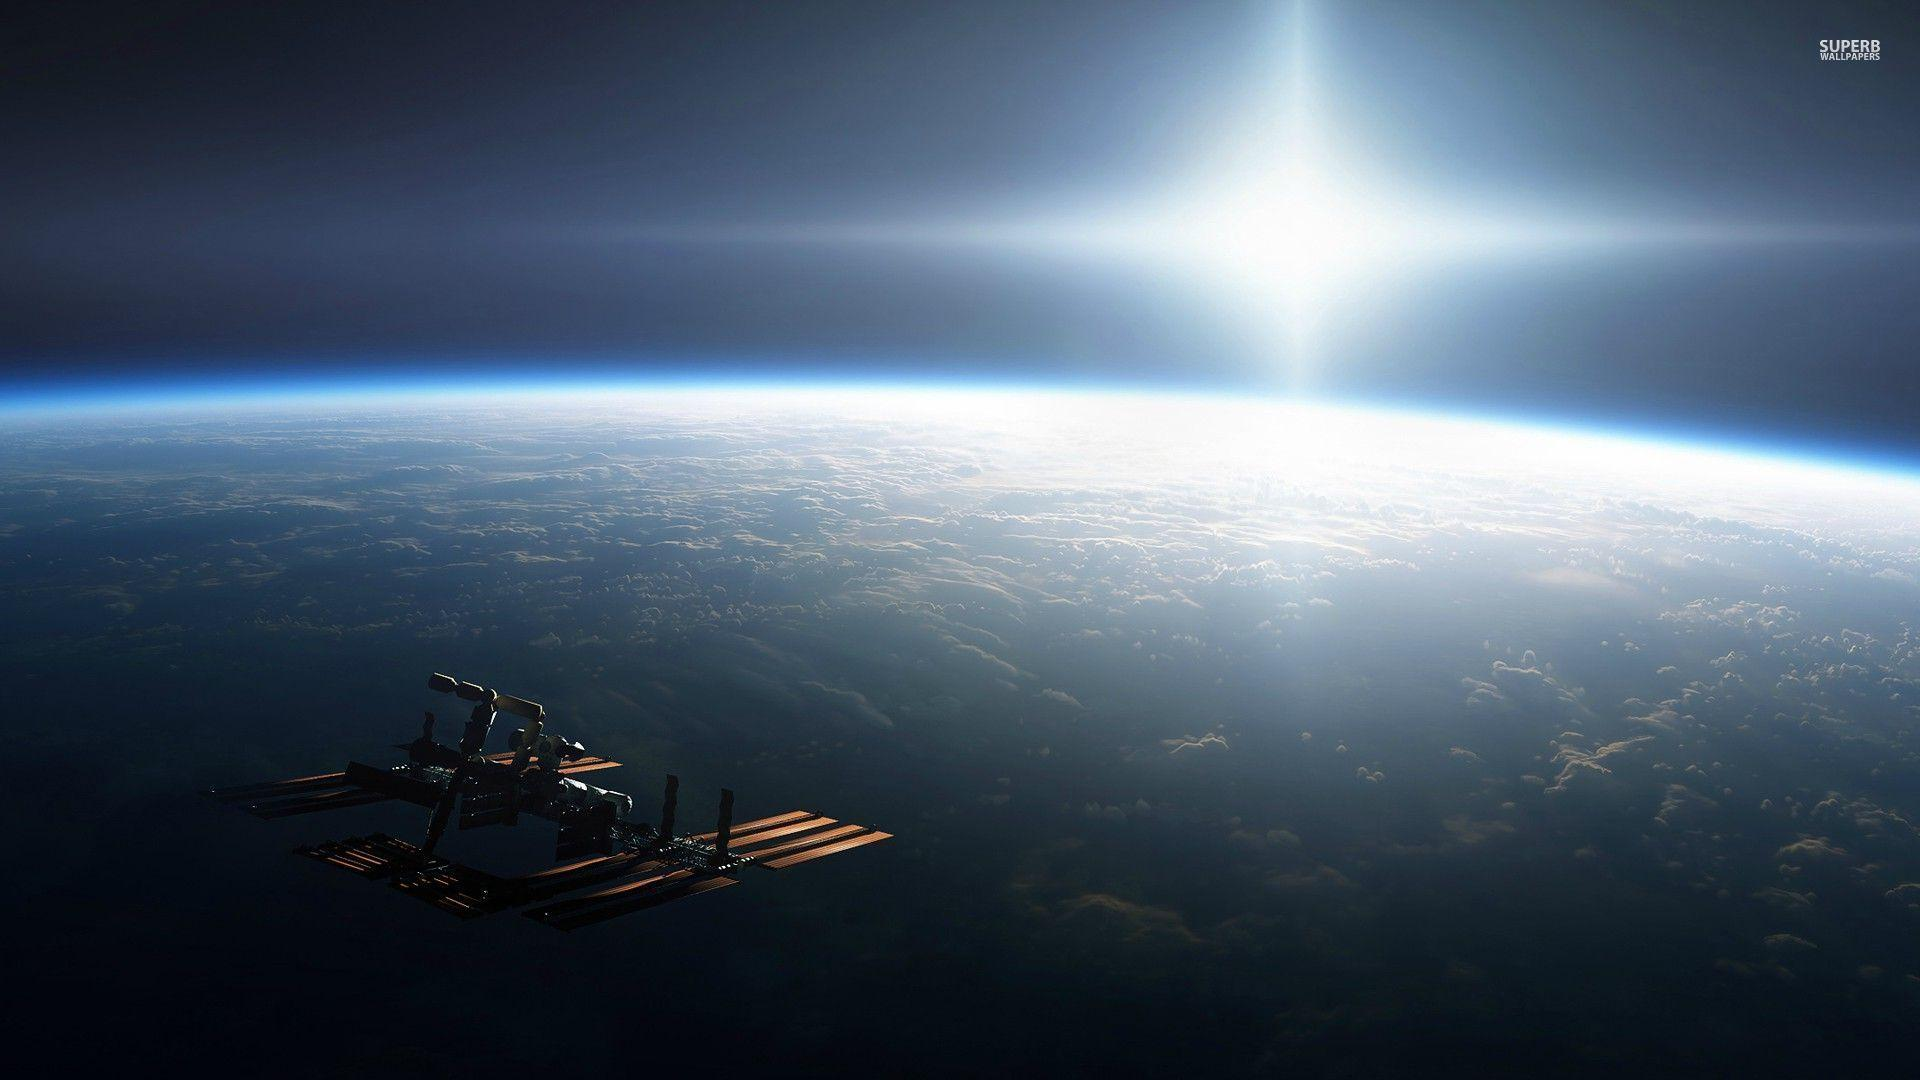 International space station wallpapers wallpaper cave - Space station wallpaper ...